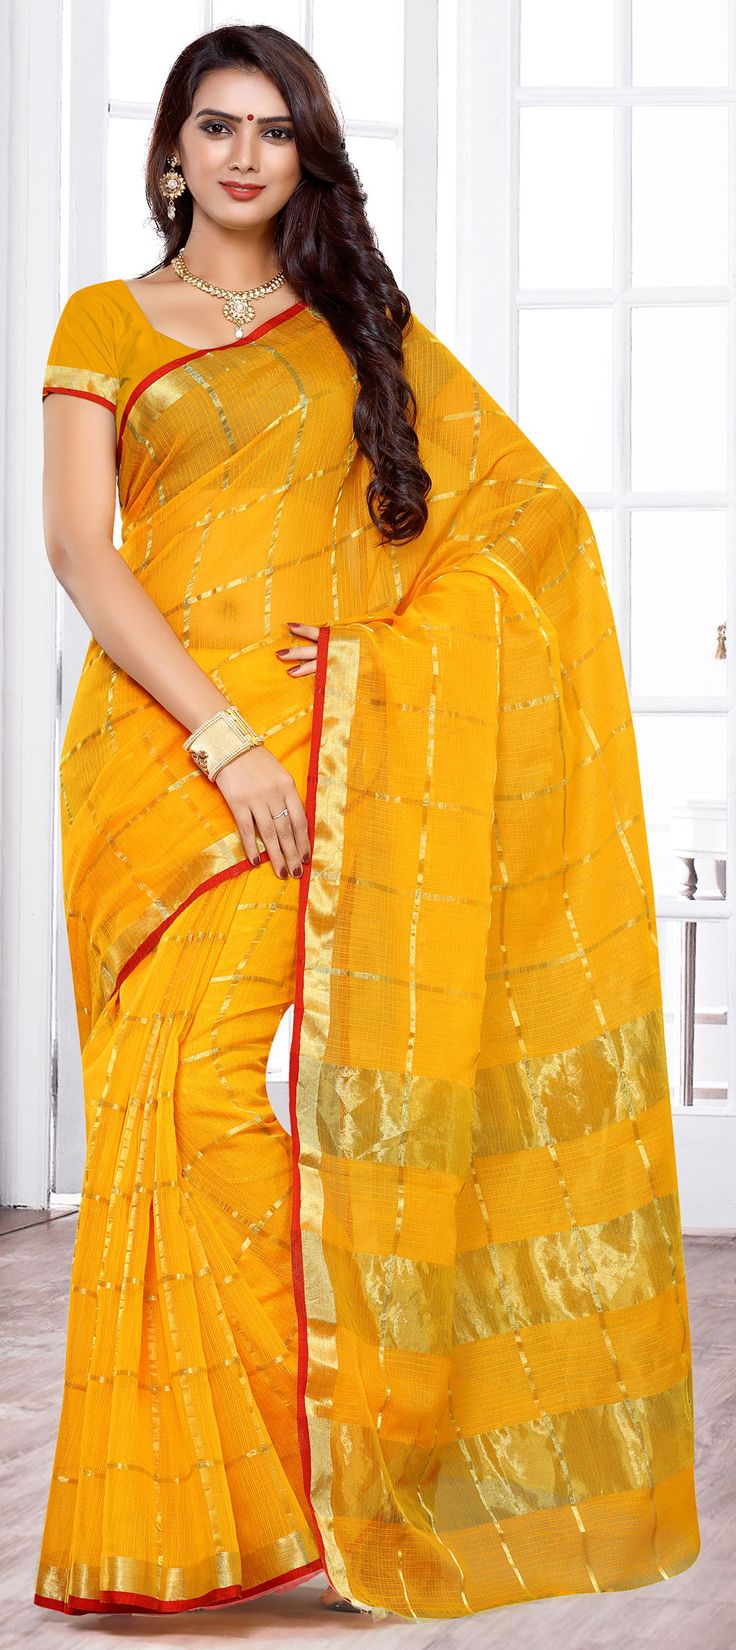 744575: Yellow  color family Party Wear Sarees   with matching unstitched blouse.